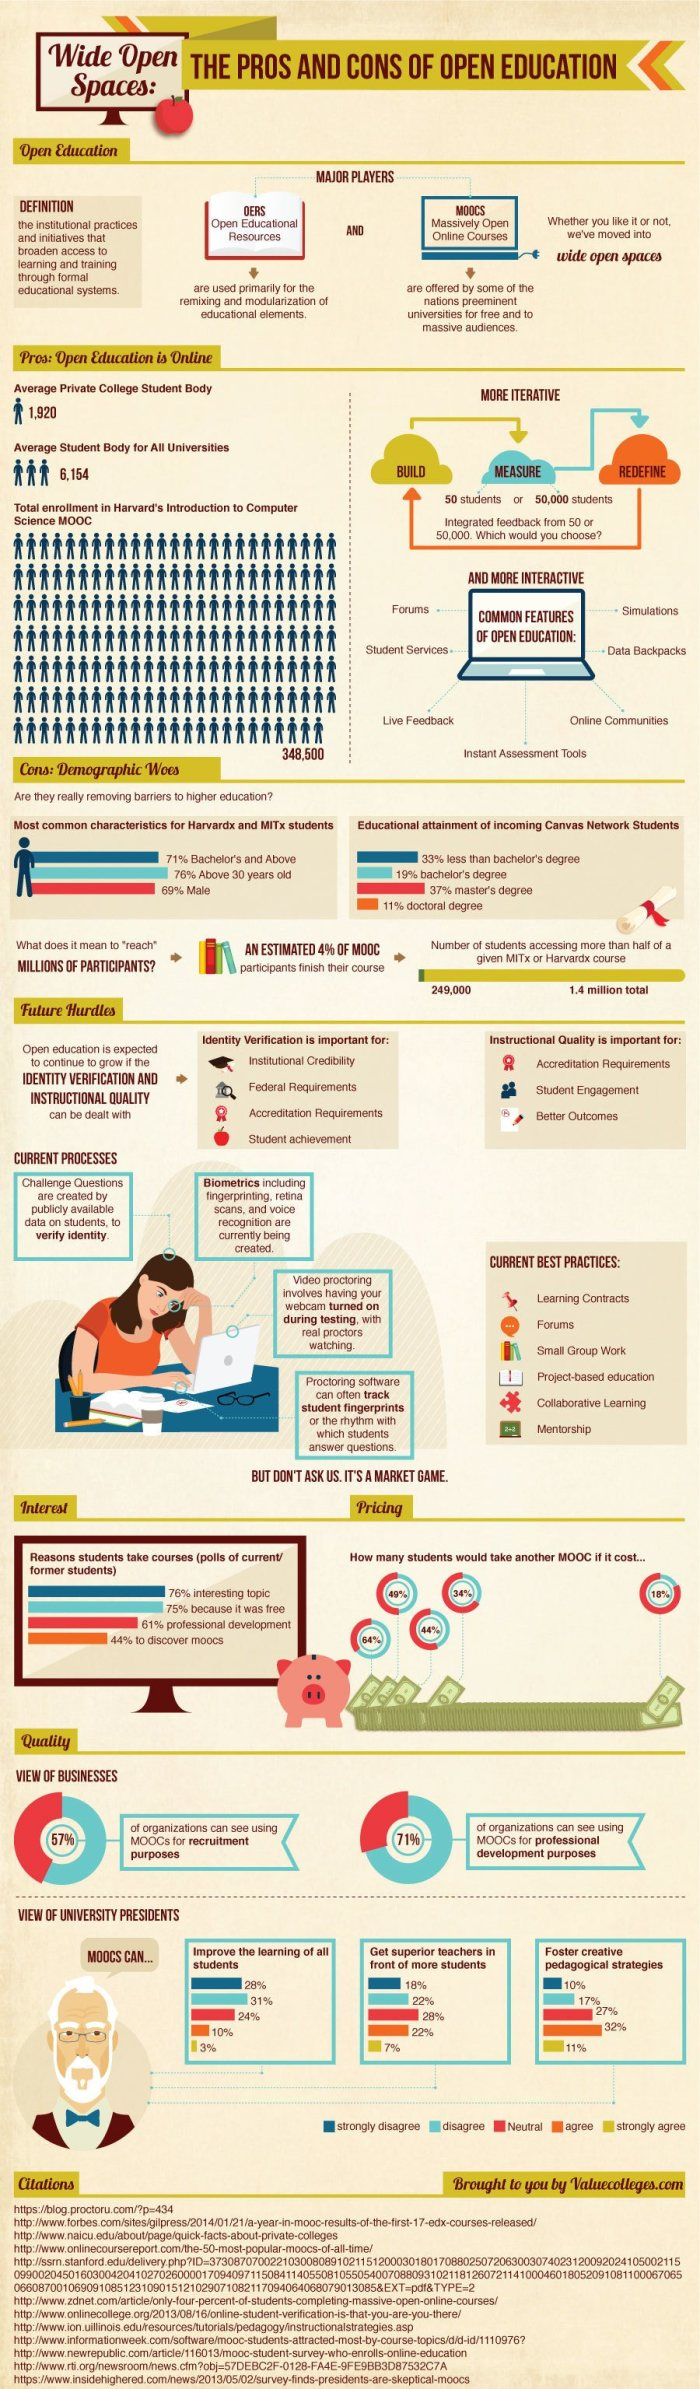 The Pros and Cons of Open Education Infographic